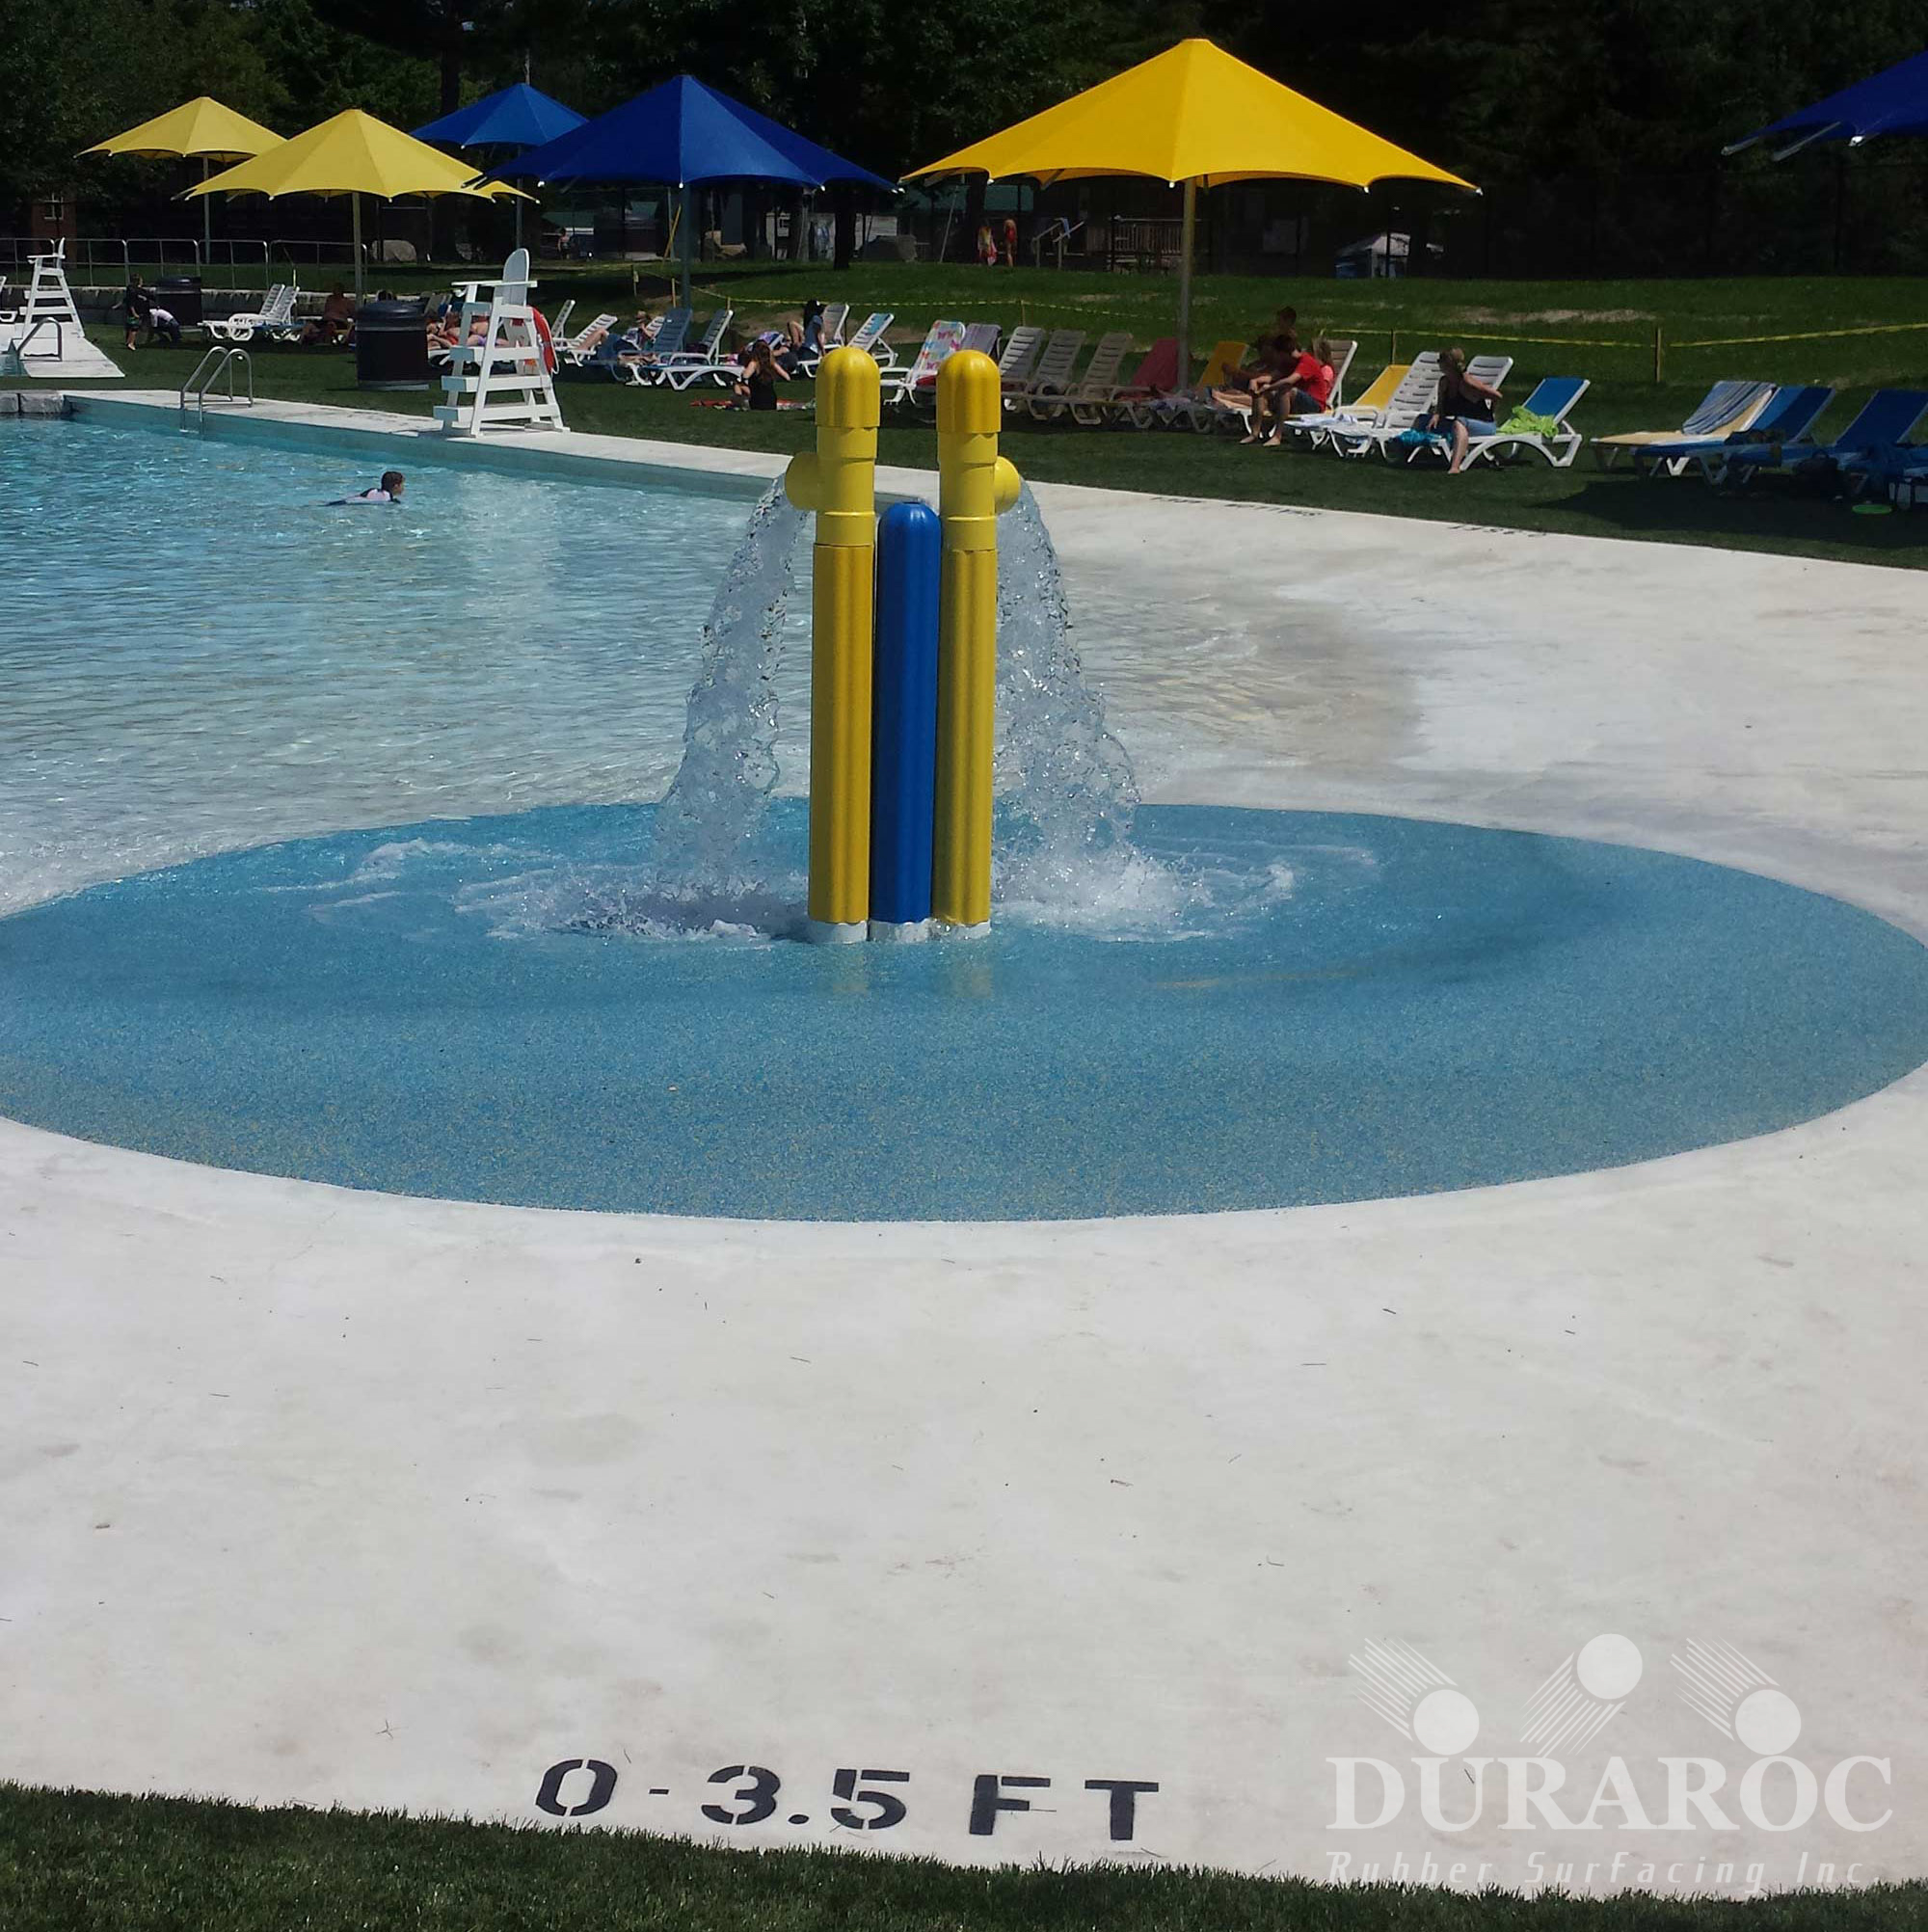 Water Playground with Duraroc coating